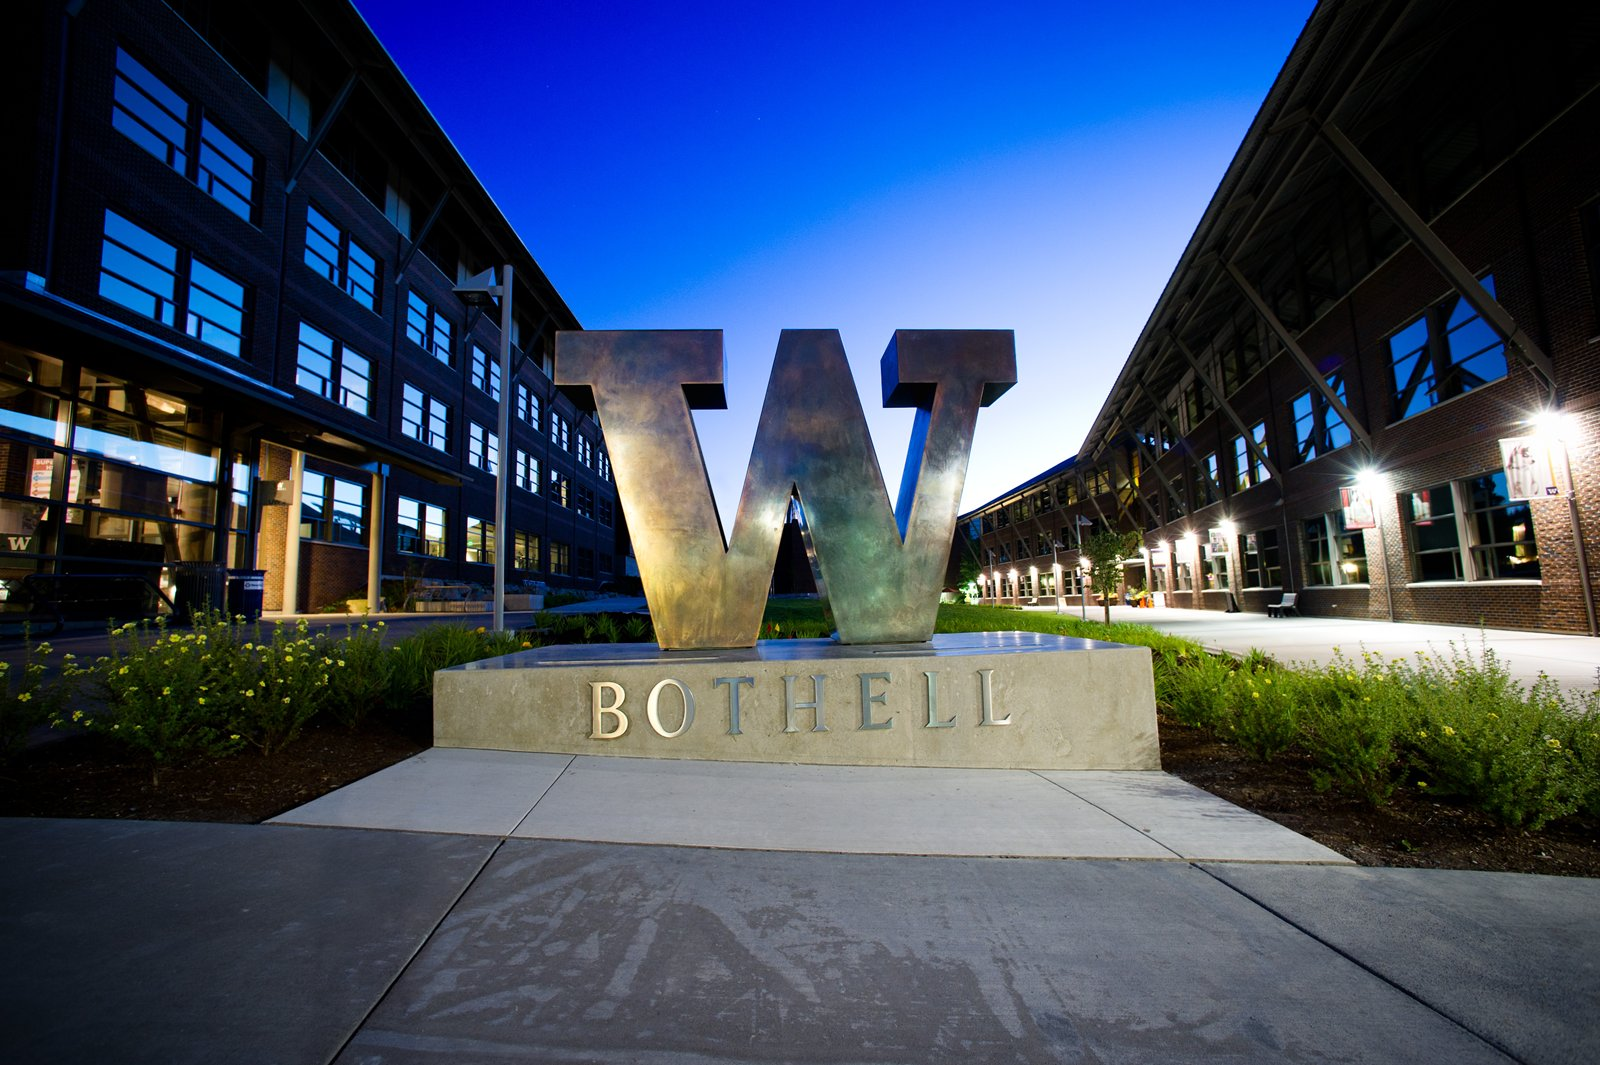 Bothell campus